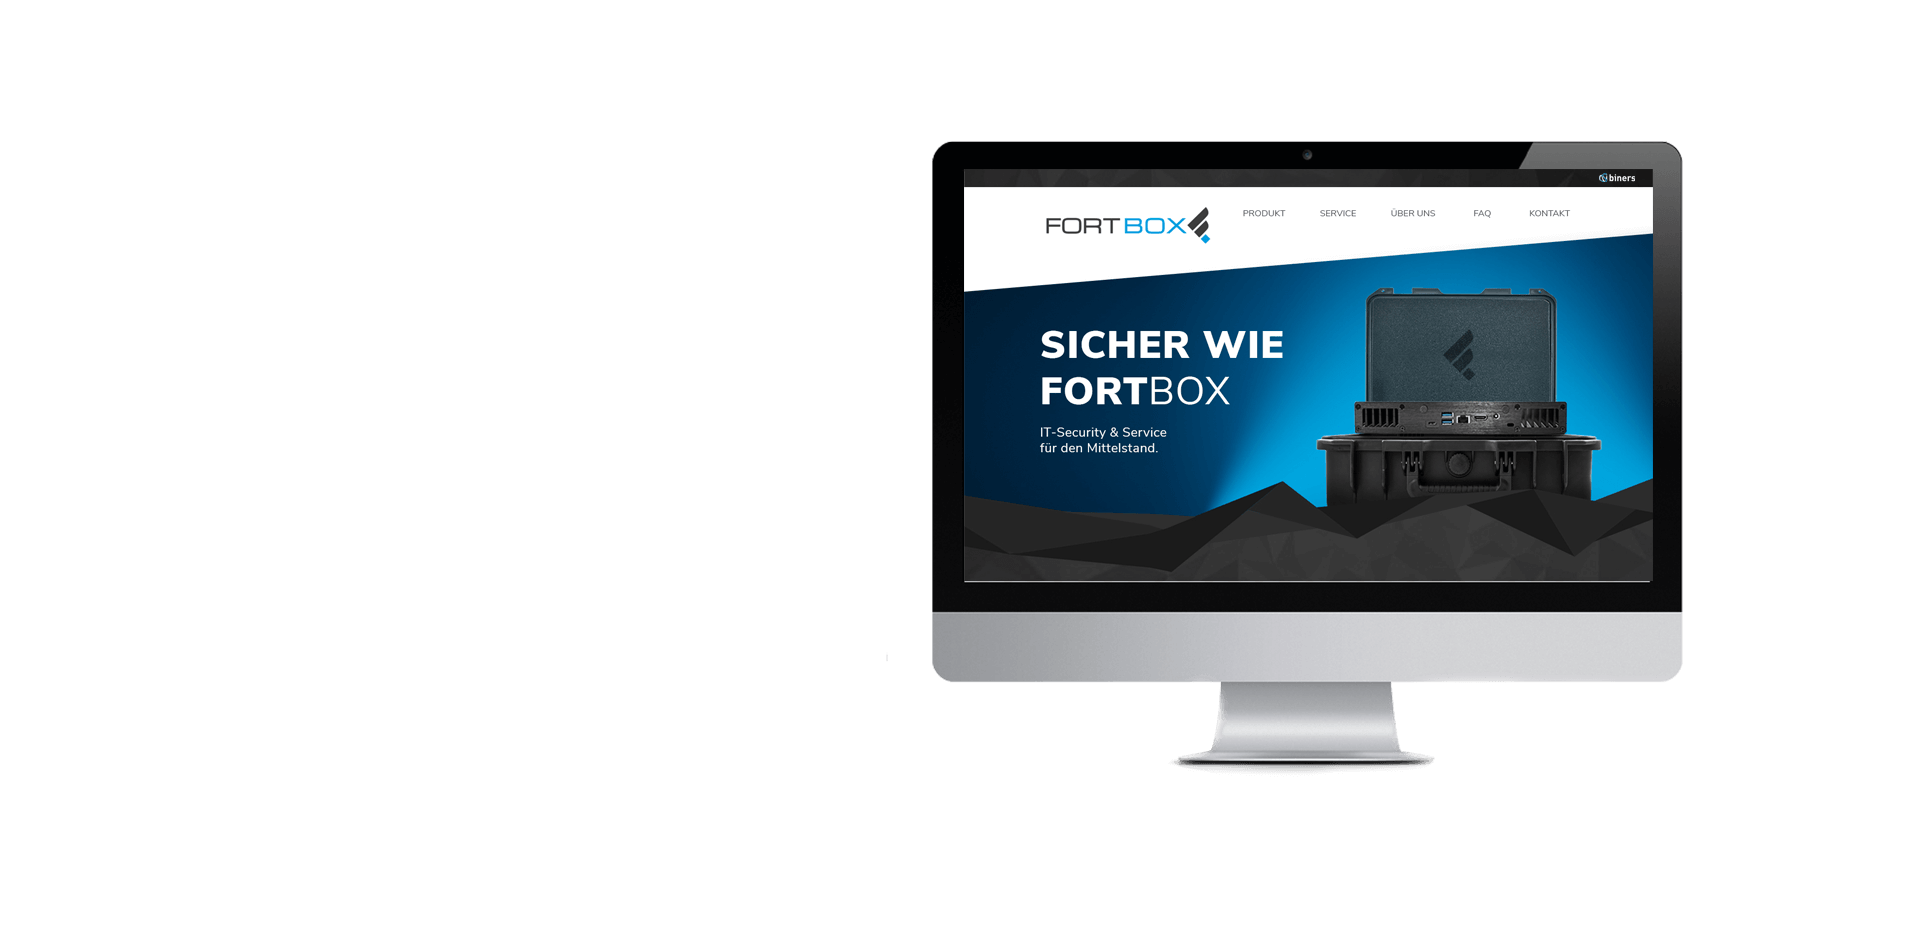 fortbox desktop ansicht